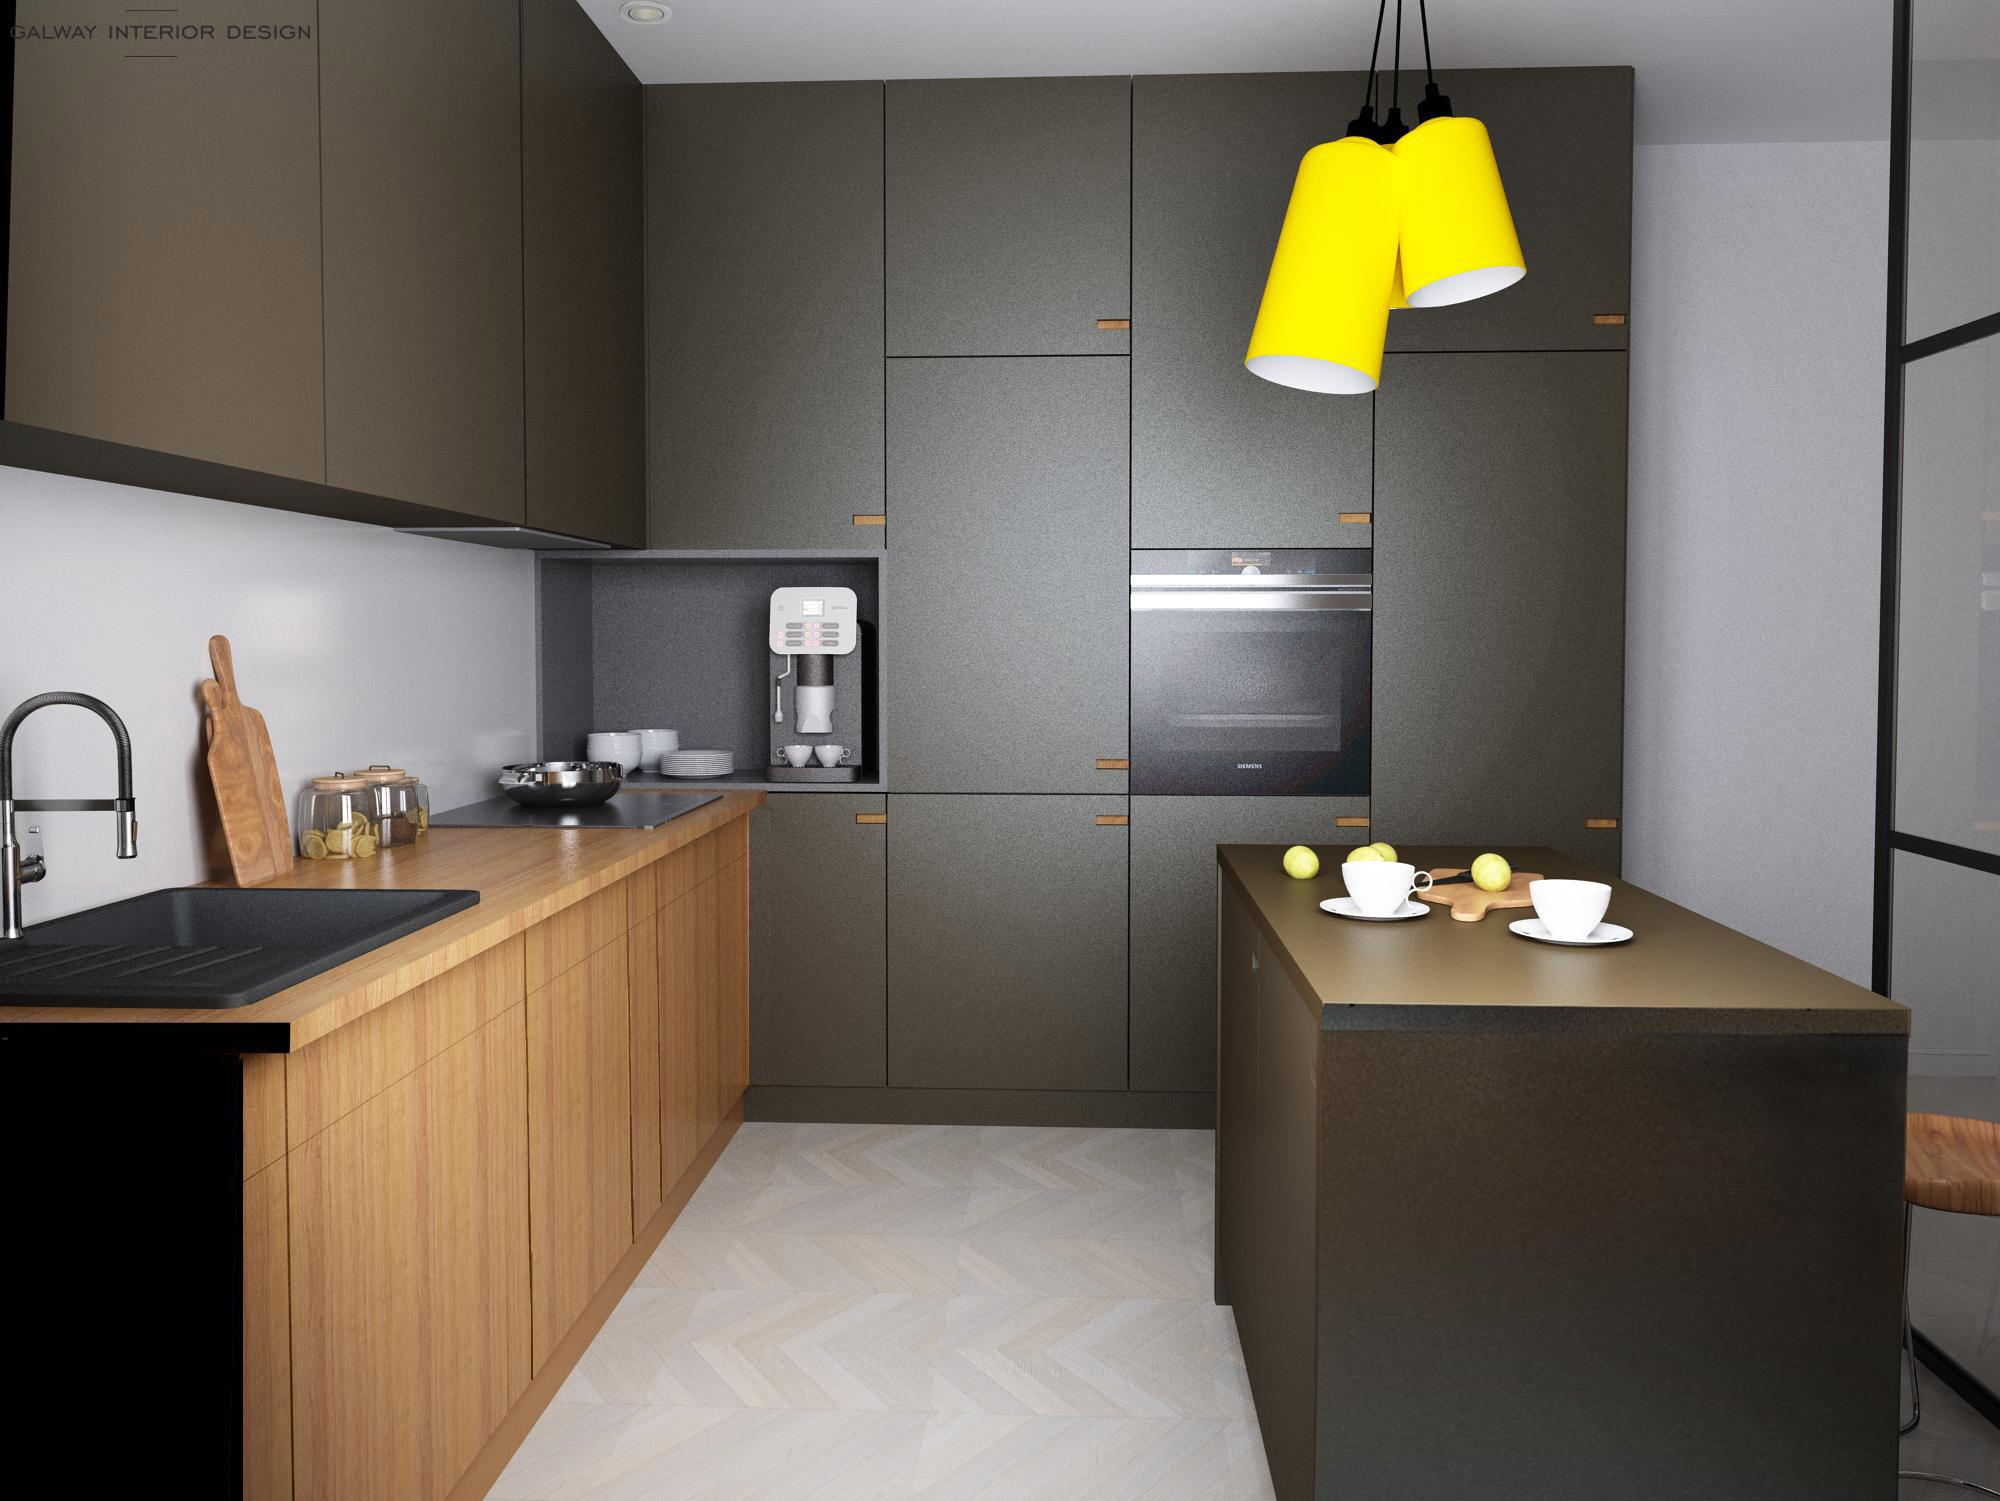 Galway Interior Design - Kitchen 3D